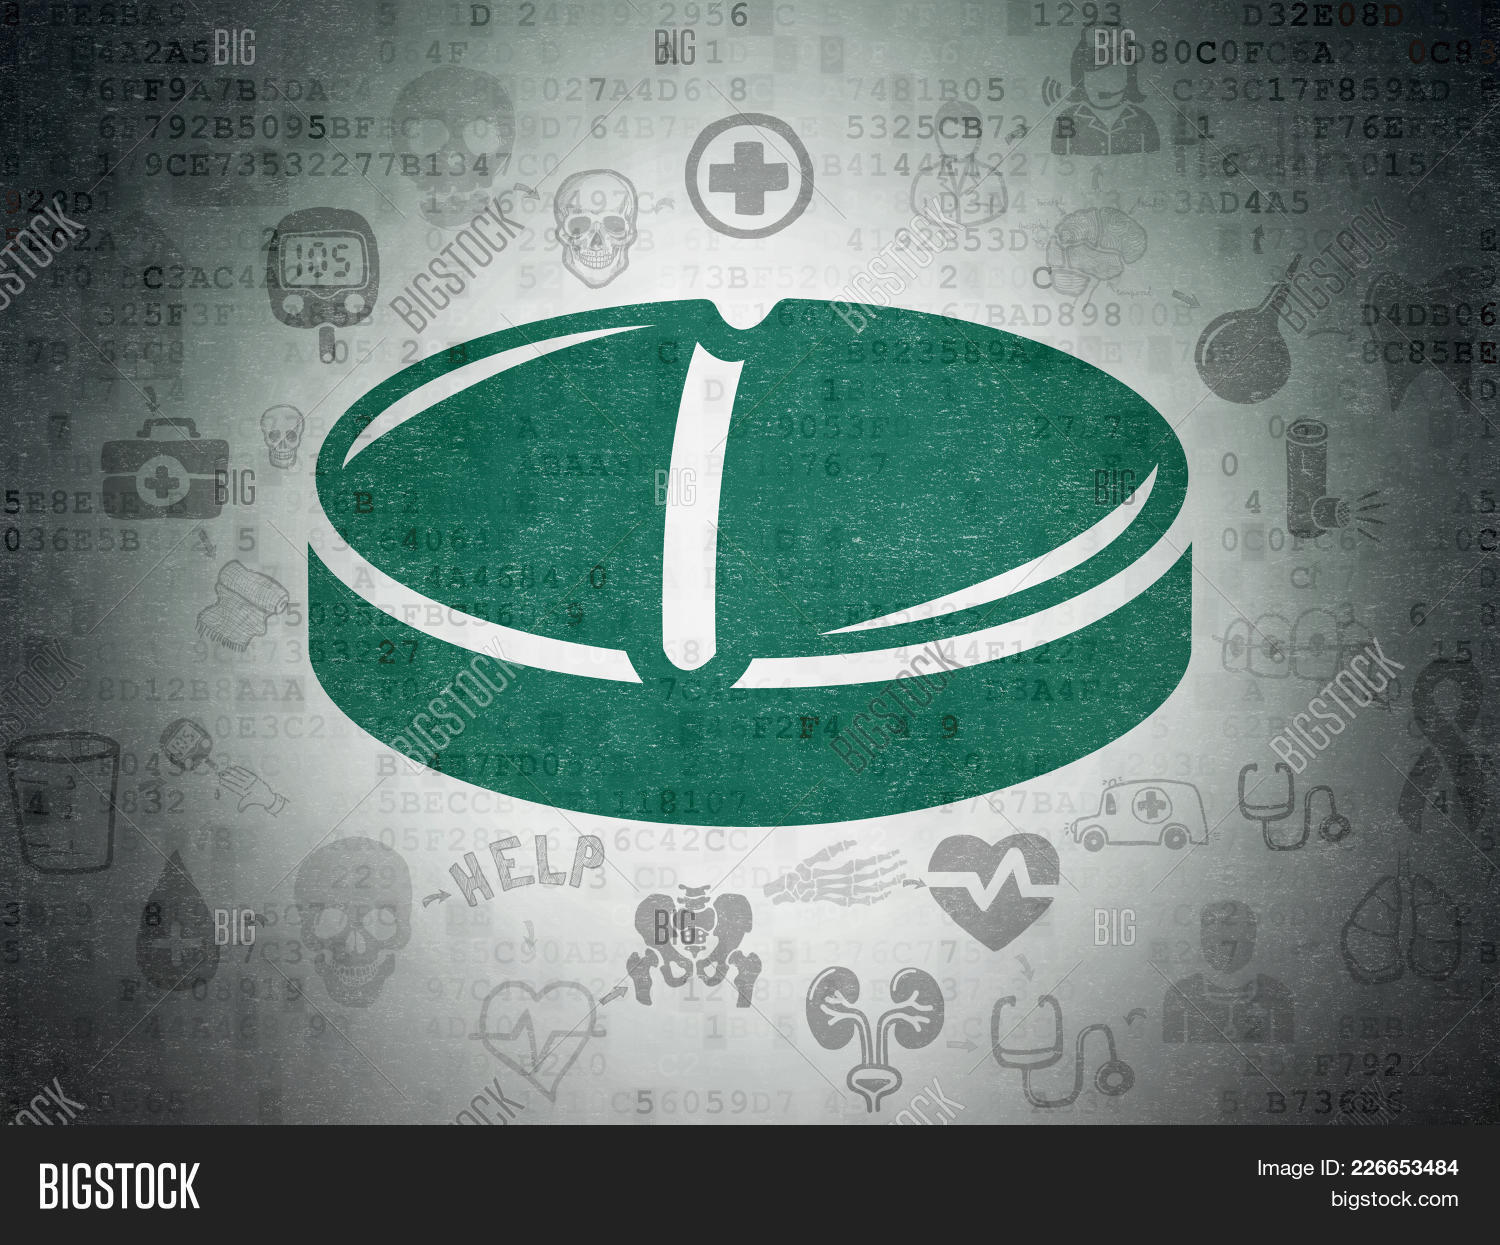 Painted Medicine Concept Green Pill Powerpoint Template Painted